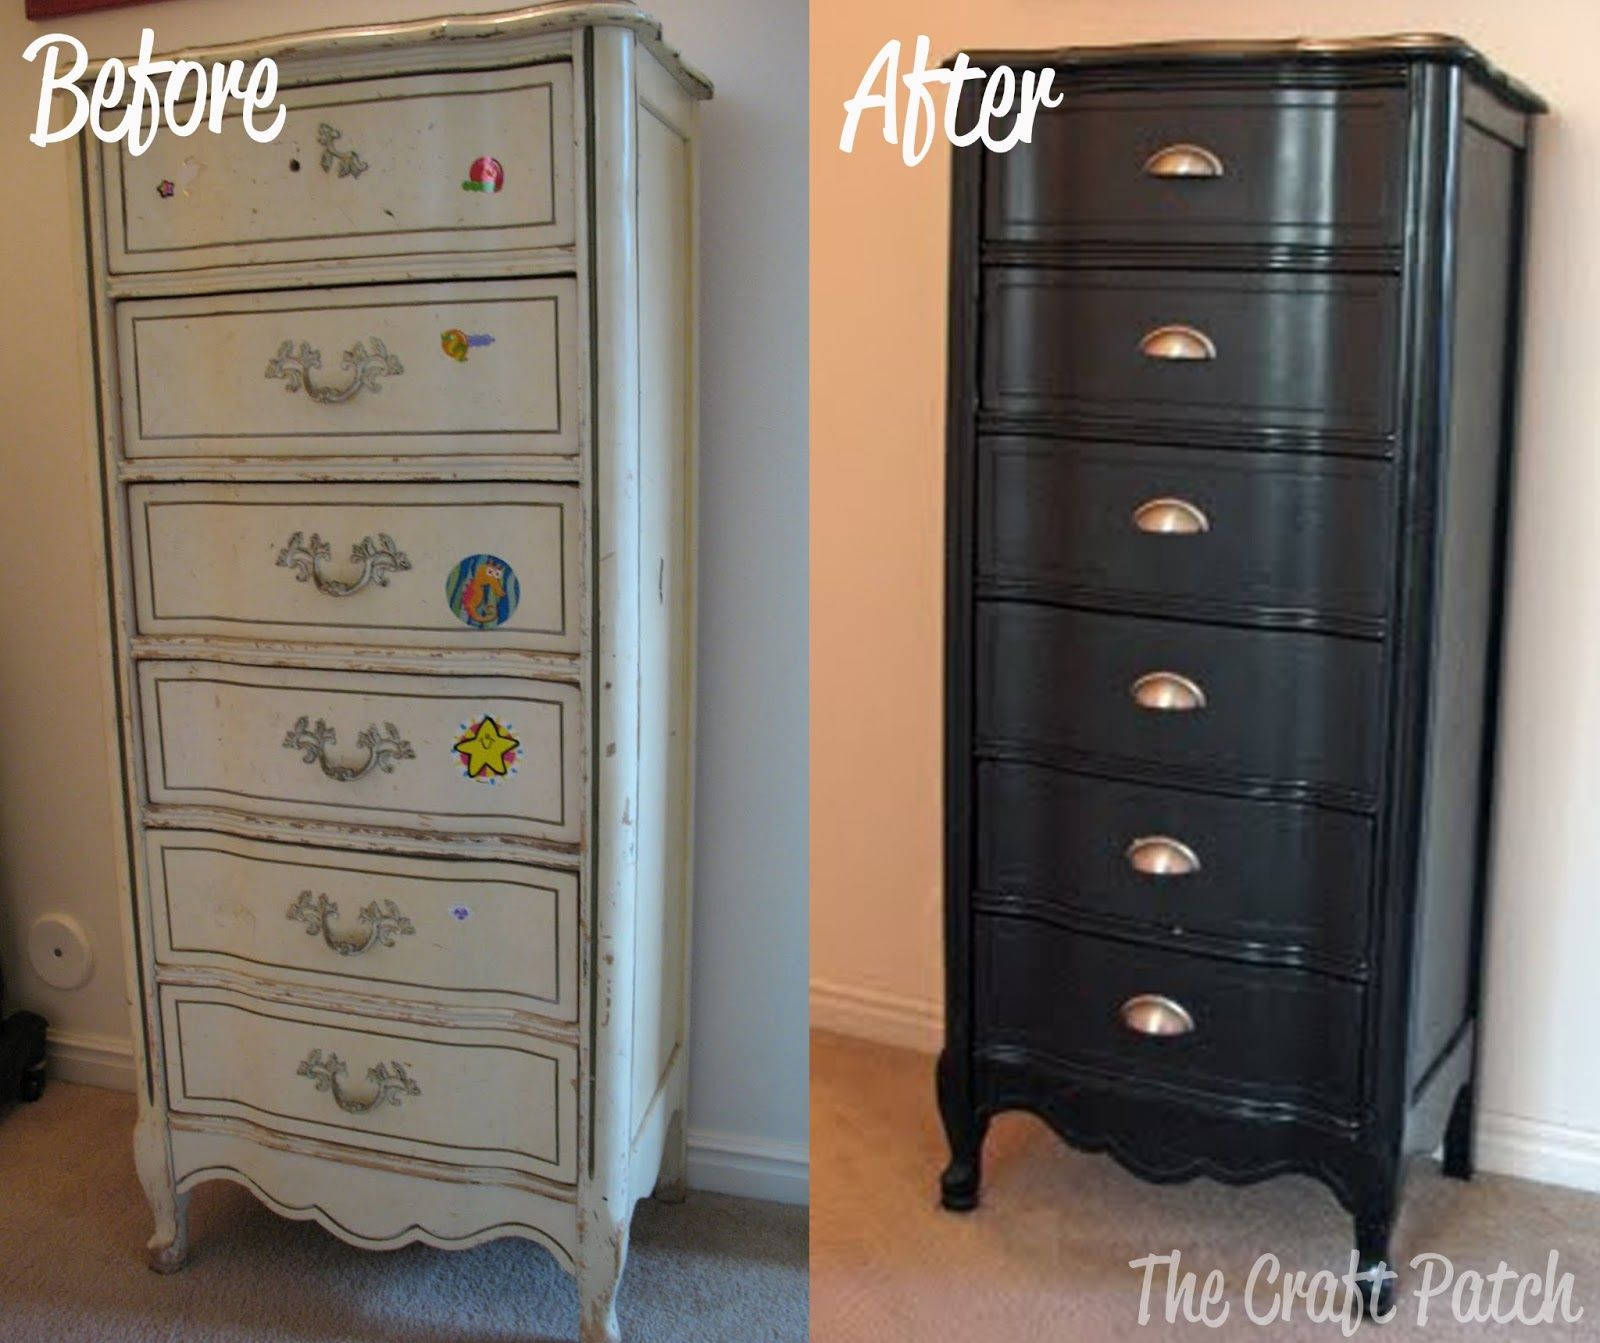 Painted furniture ideas before and after - The Craft Patch Furniture Redo The 5 Dresser